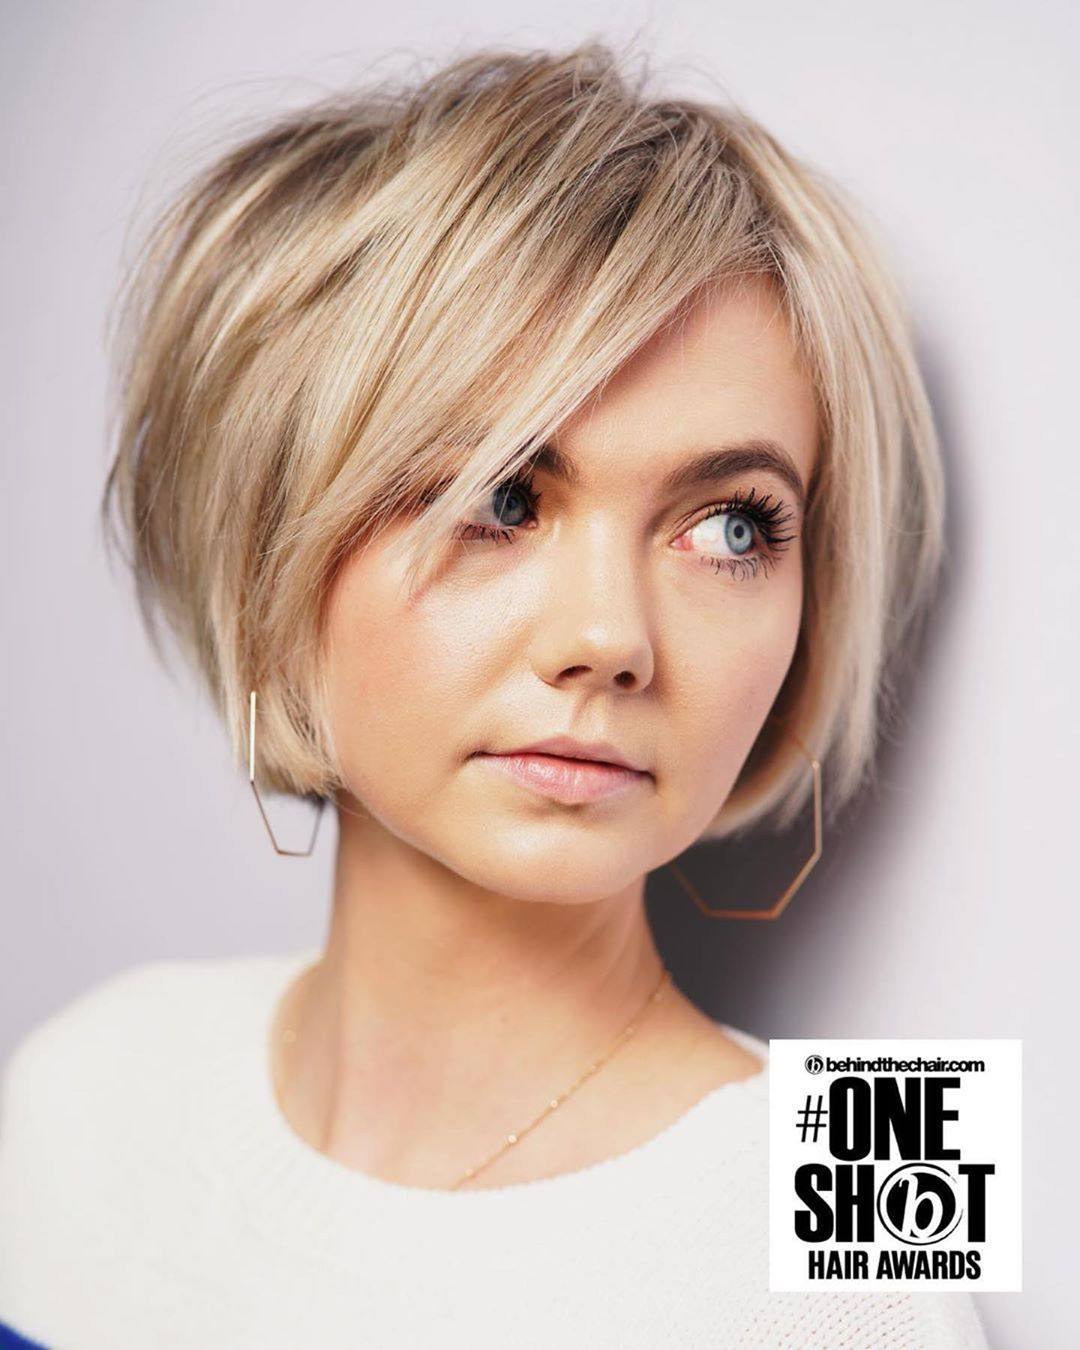 Pixie Hairstyles For Older Women In 2020 Older Women Hairstyles Short Hair Over 60 Short Sassy Haircuts